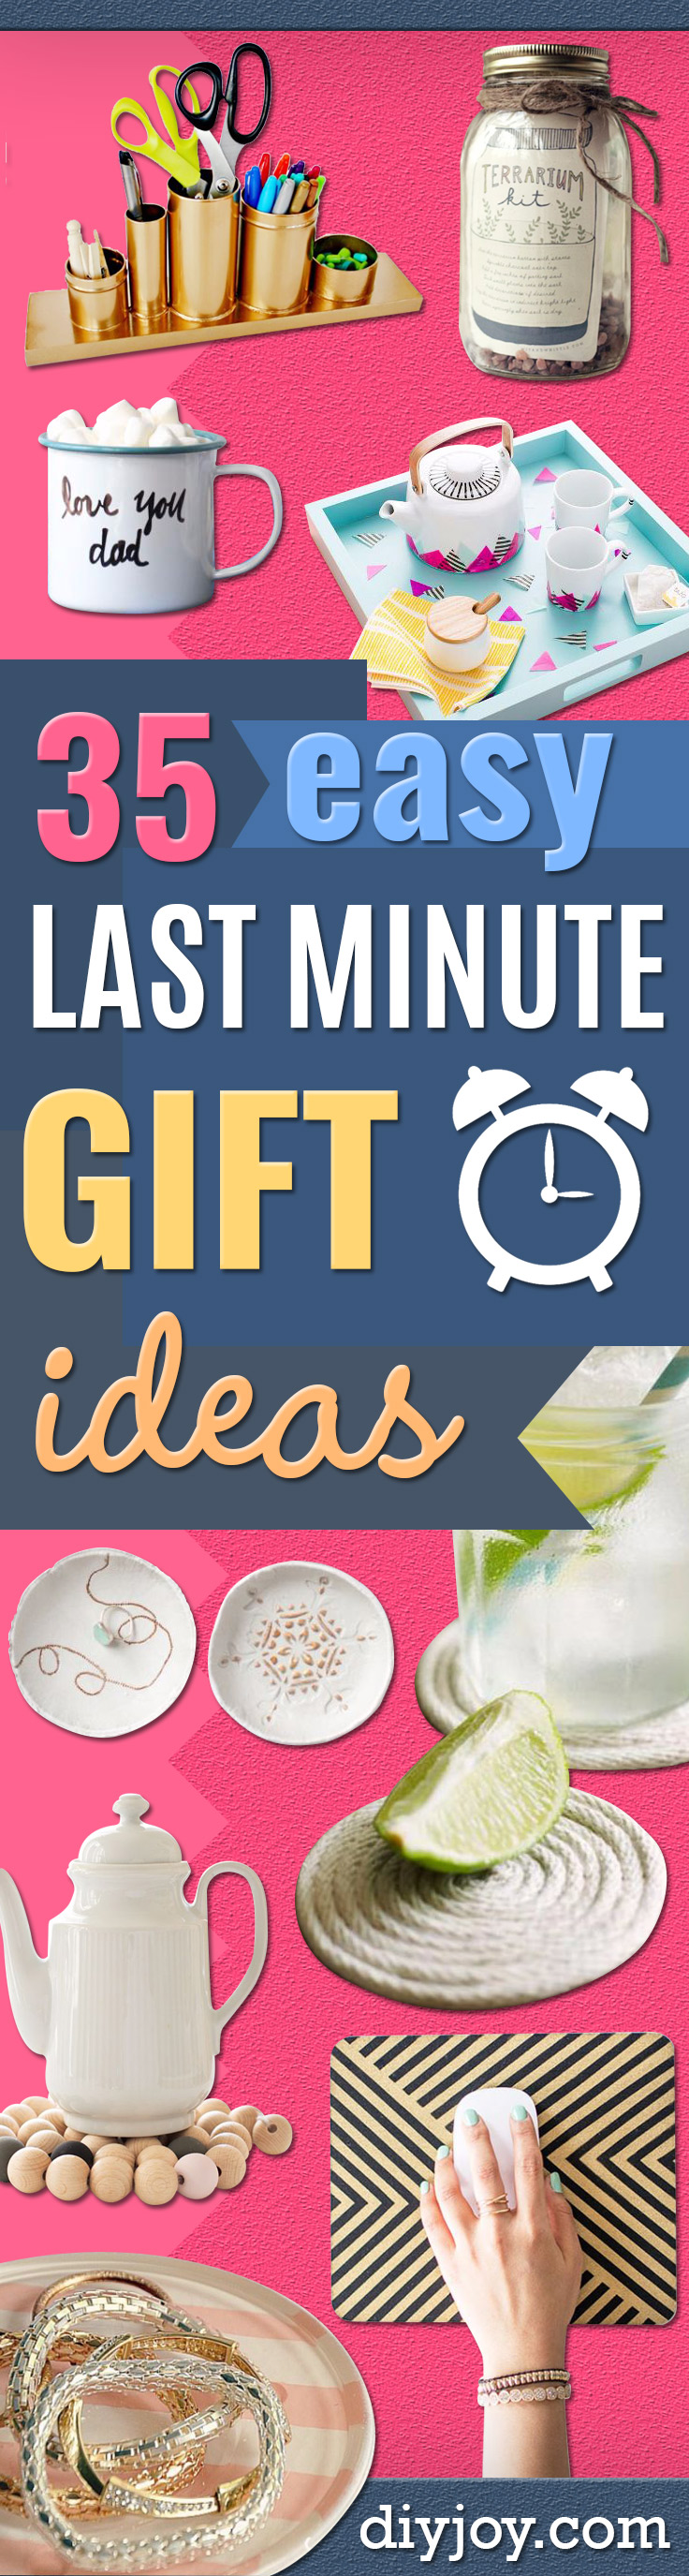 Last Minute Christmas Gifts - Quick DIY Gift Ideas and Easy Christmas Presents To Make for